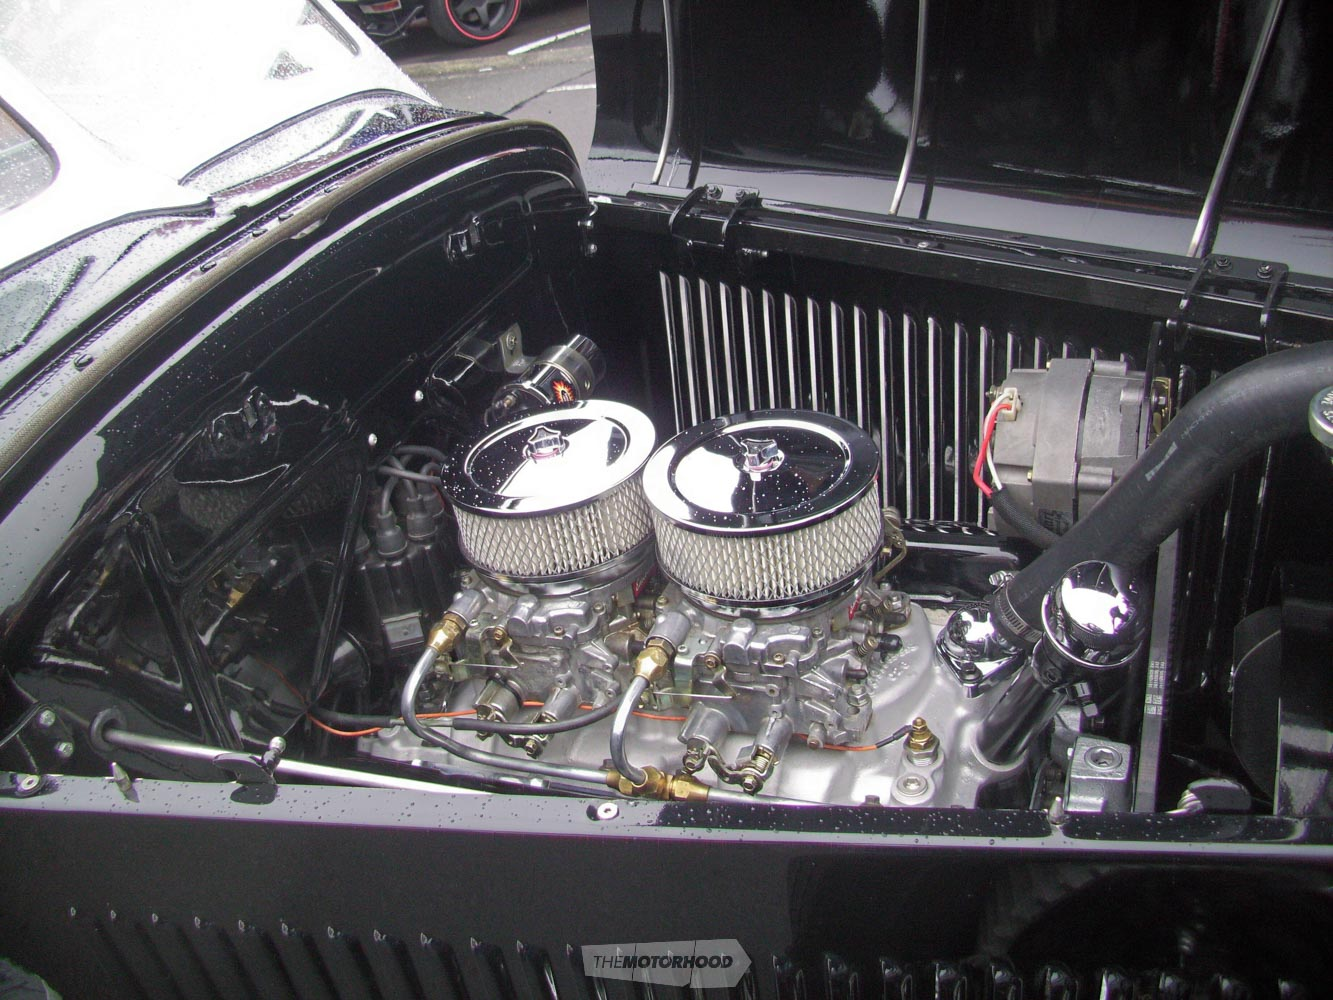 Didnt have any infor on the motor at all but like everything else it was immaculate.jpg